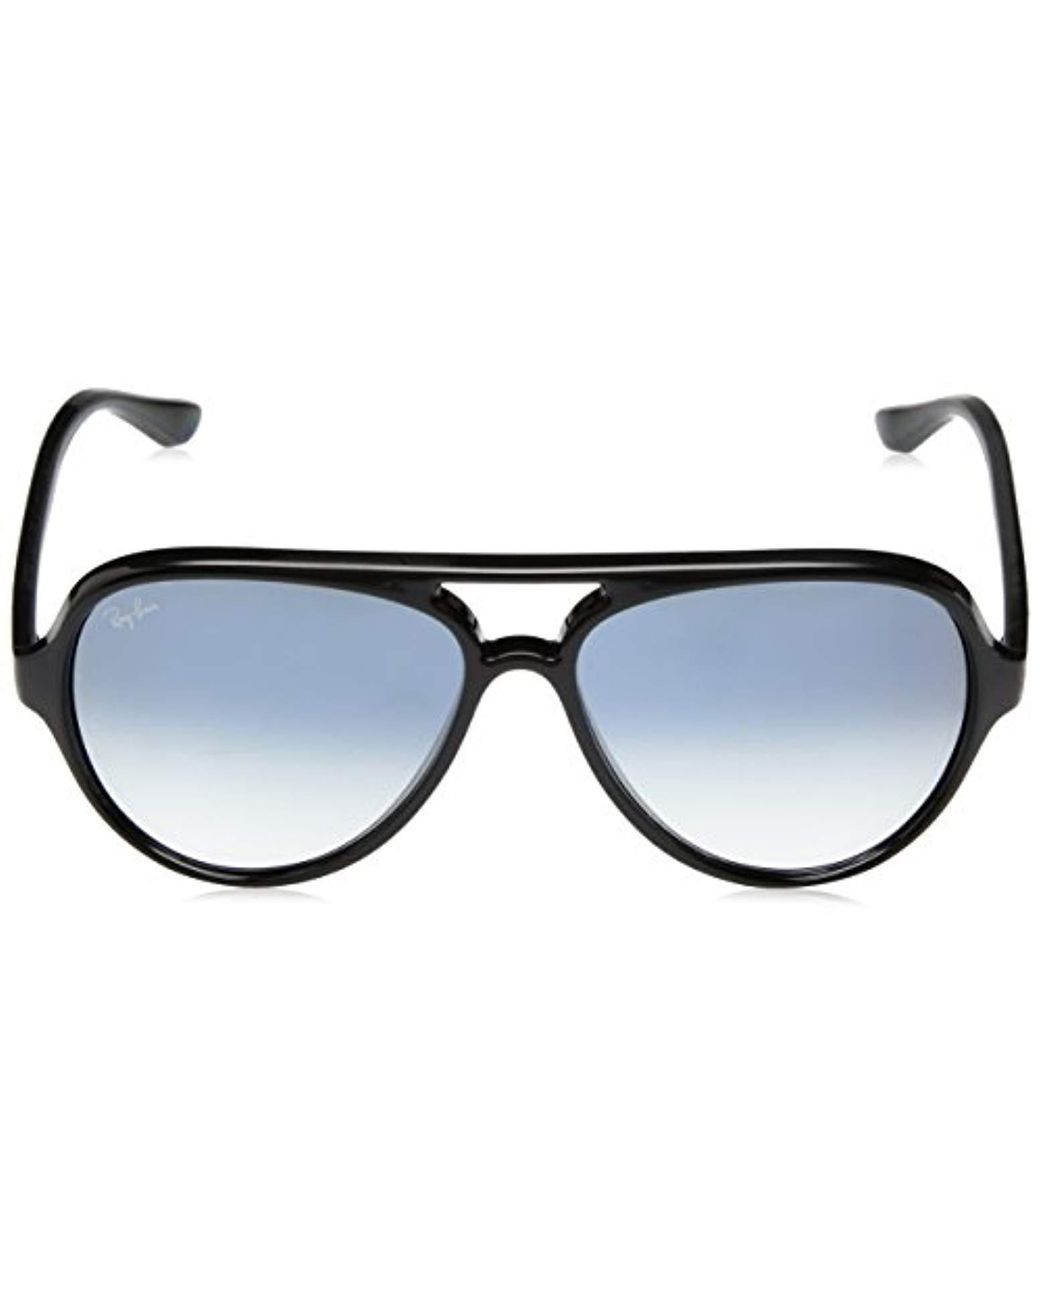 d8003897b5924 Ray-Ban Cats 5000 Aviator Sunglasses In Black Blue Gradient Rb4125 601 3f  59 in Black for Men - Lyst